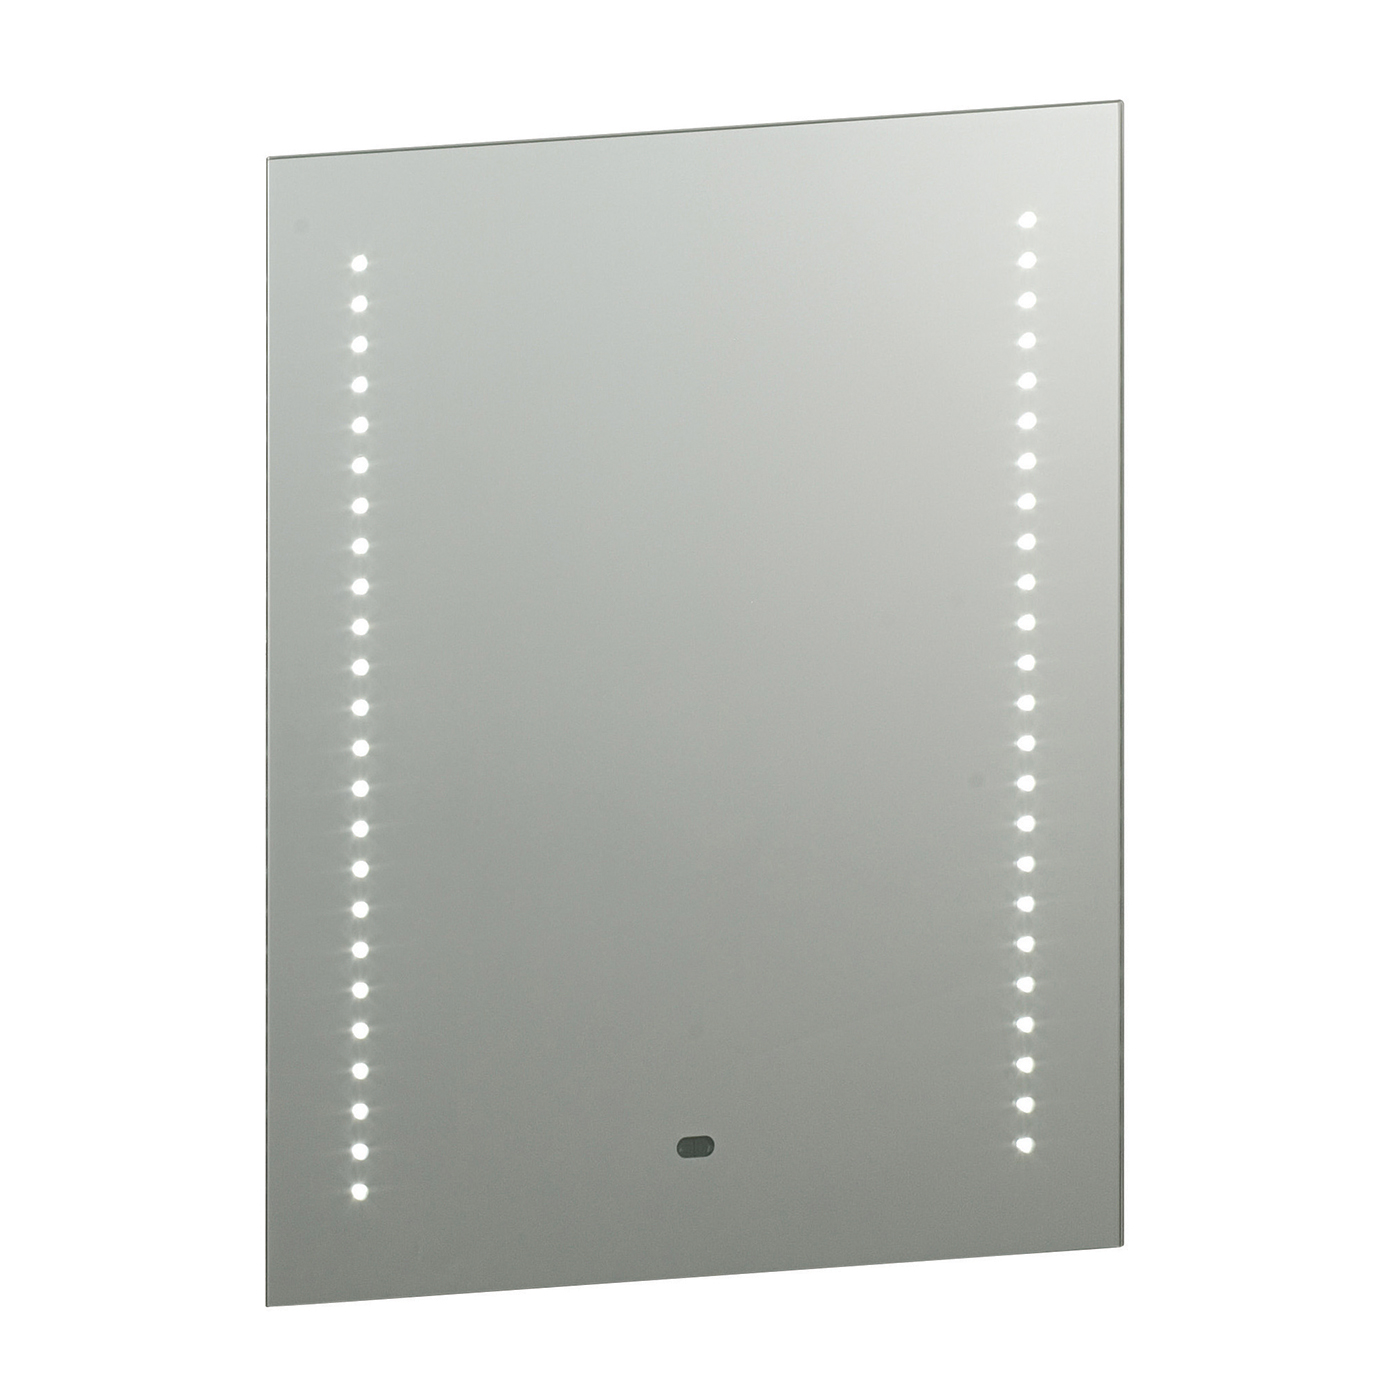 Endon Spegel LED shaver bathroom mirror IP44 4W sensor H: 600mm W: 500mm